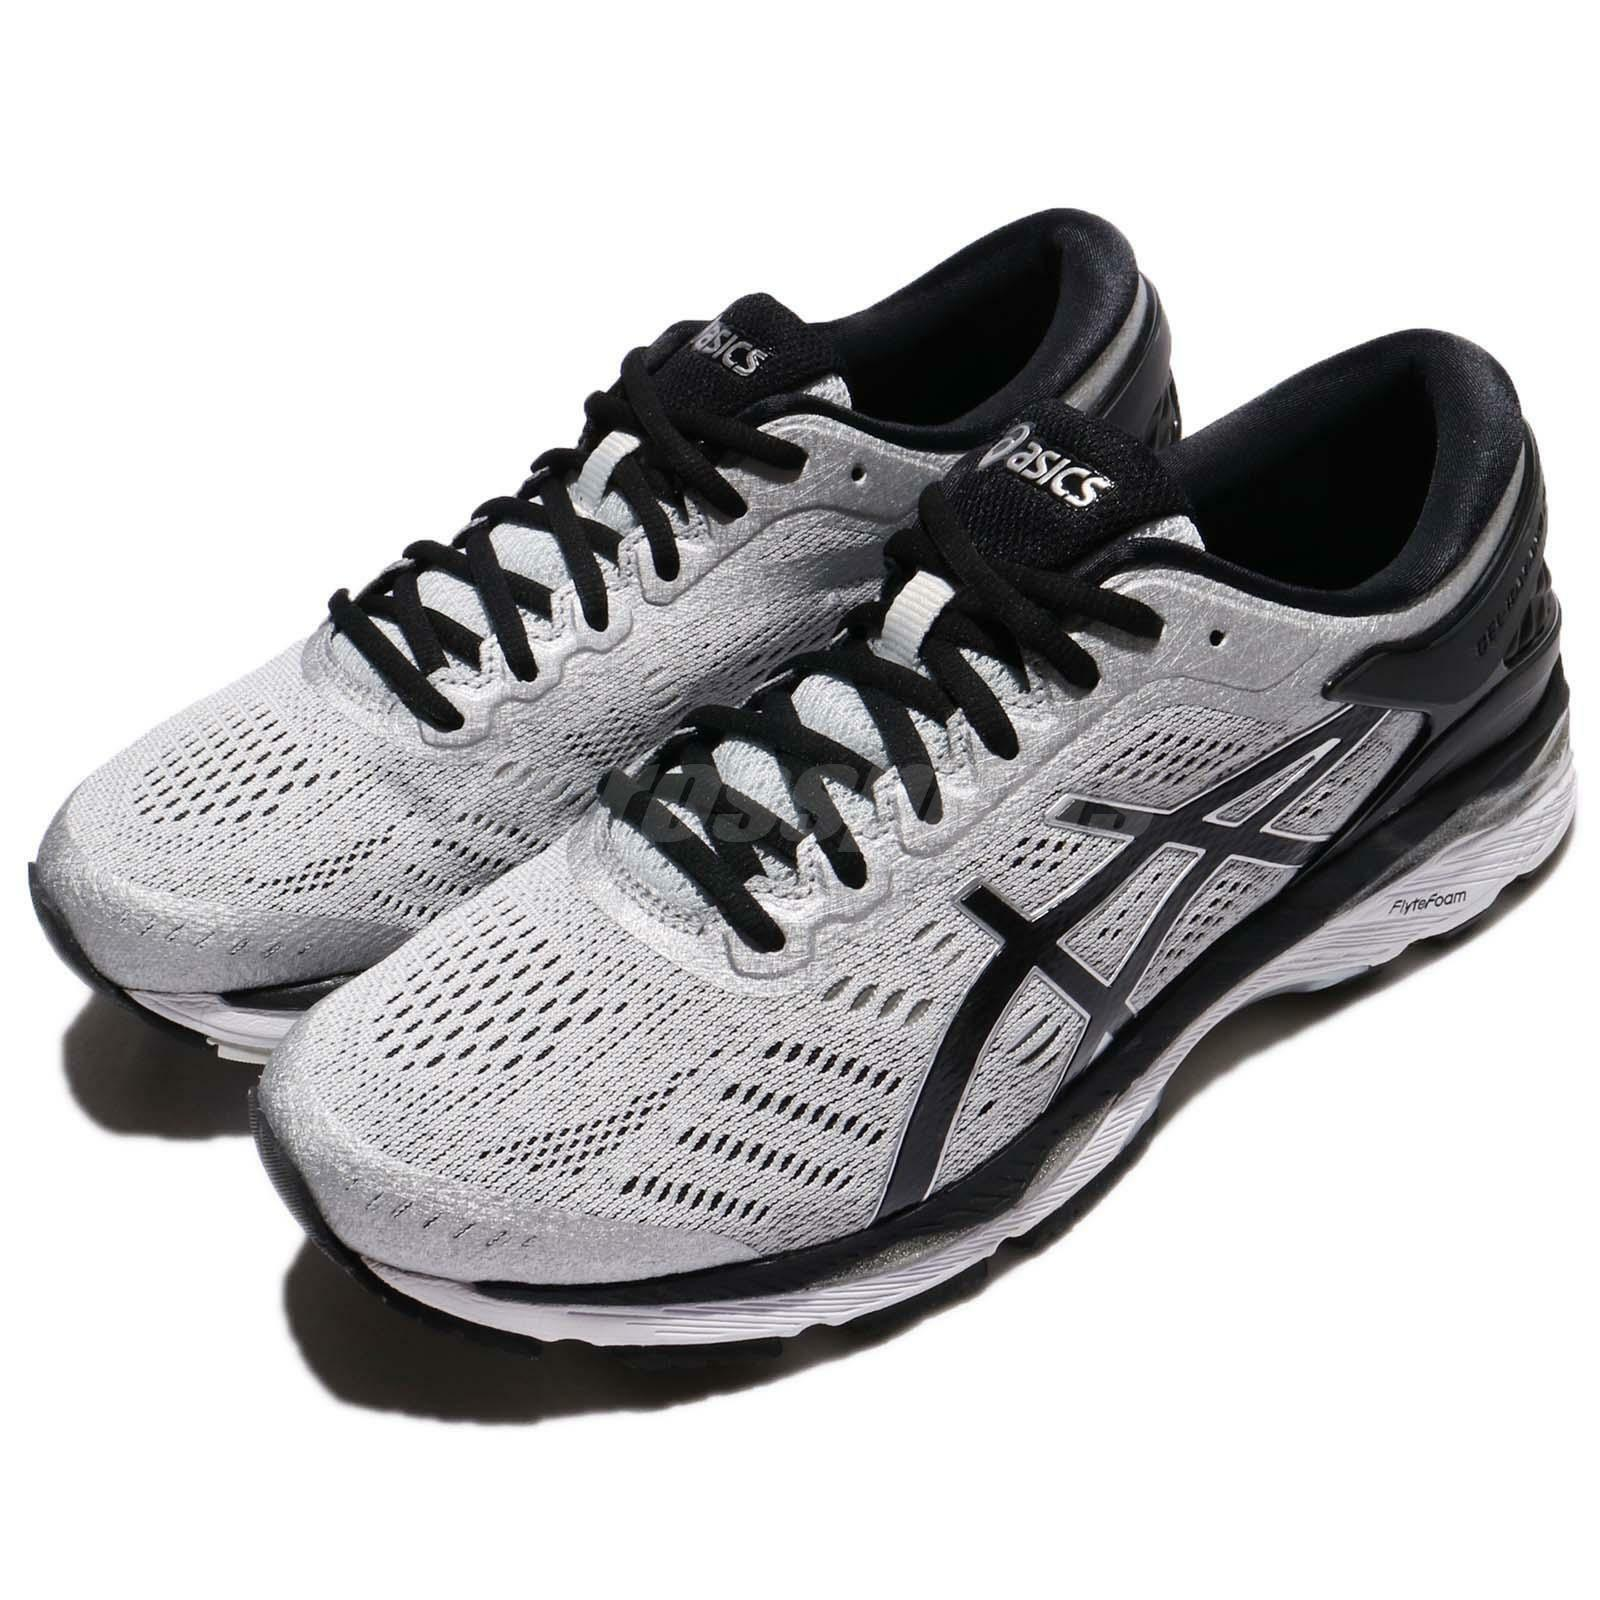 Asics Gel-Kayano 24 2E FlyteFoam FlyteFoam FlyteFoam Uomo Cushion Running Shoes Runner Pick 1 de0d69